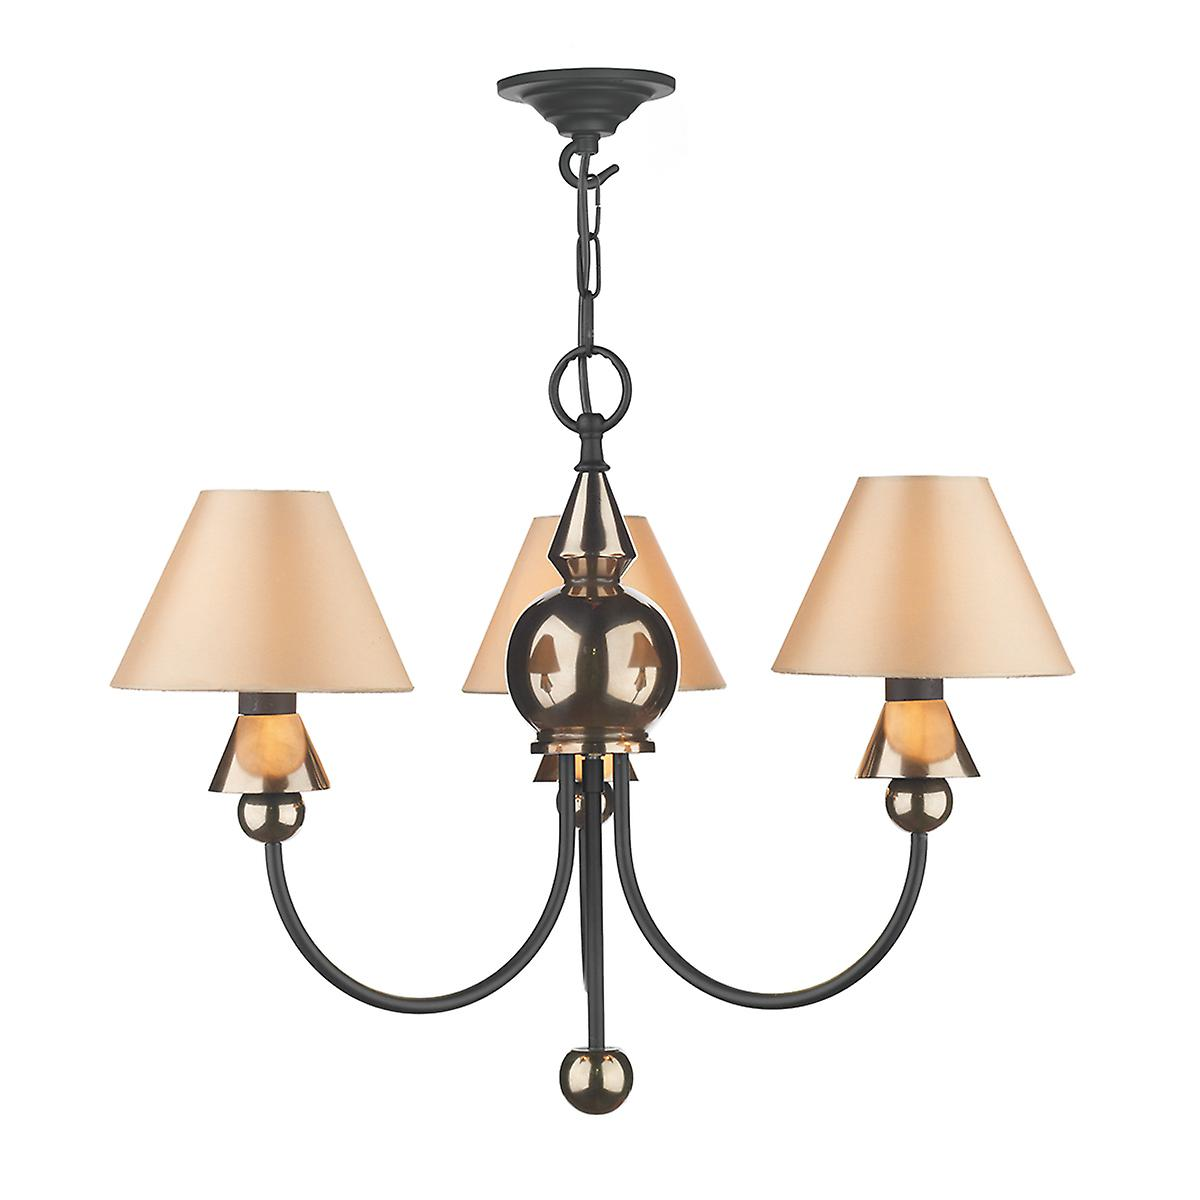 David Hunt PP37 Spearhead Traditional 3 Light Pendant In Bronze And Black